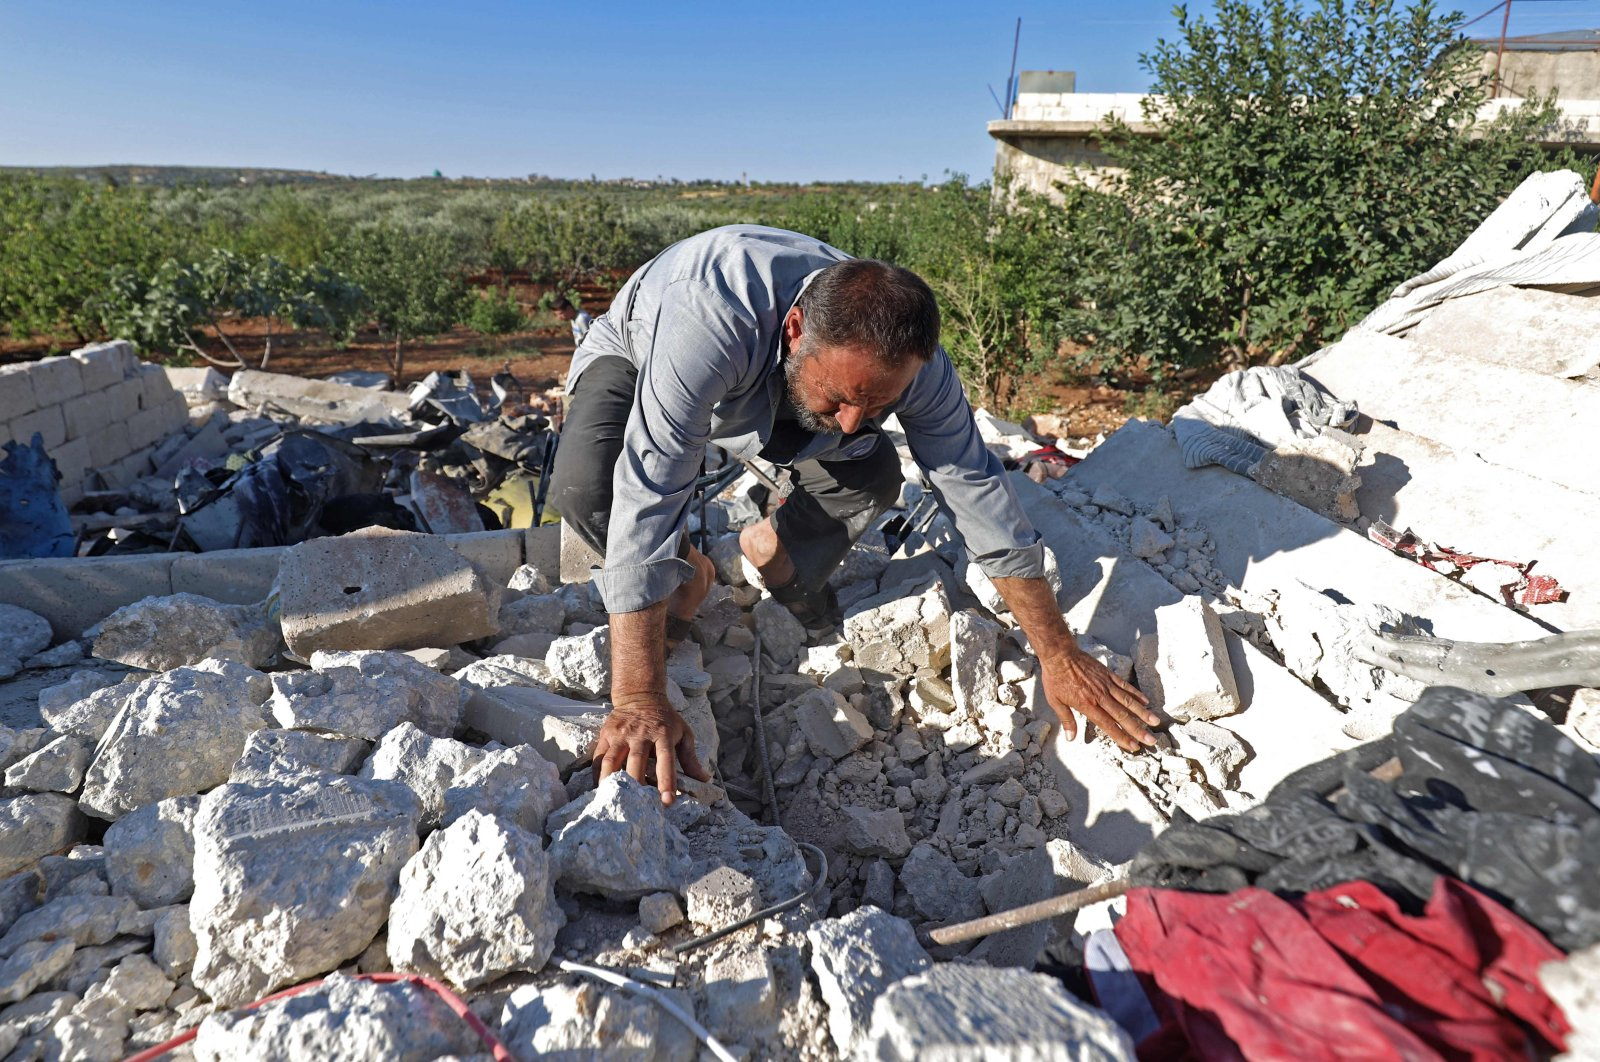 A man searches through rubble in the aftermath of Syrian regime forces' bombardment on the town of Balashun, south of Idlib province, Syria, on Aug. 19, 2021. (AFP Photo)